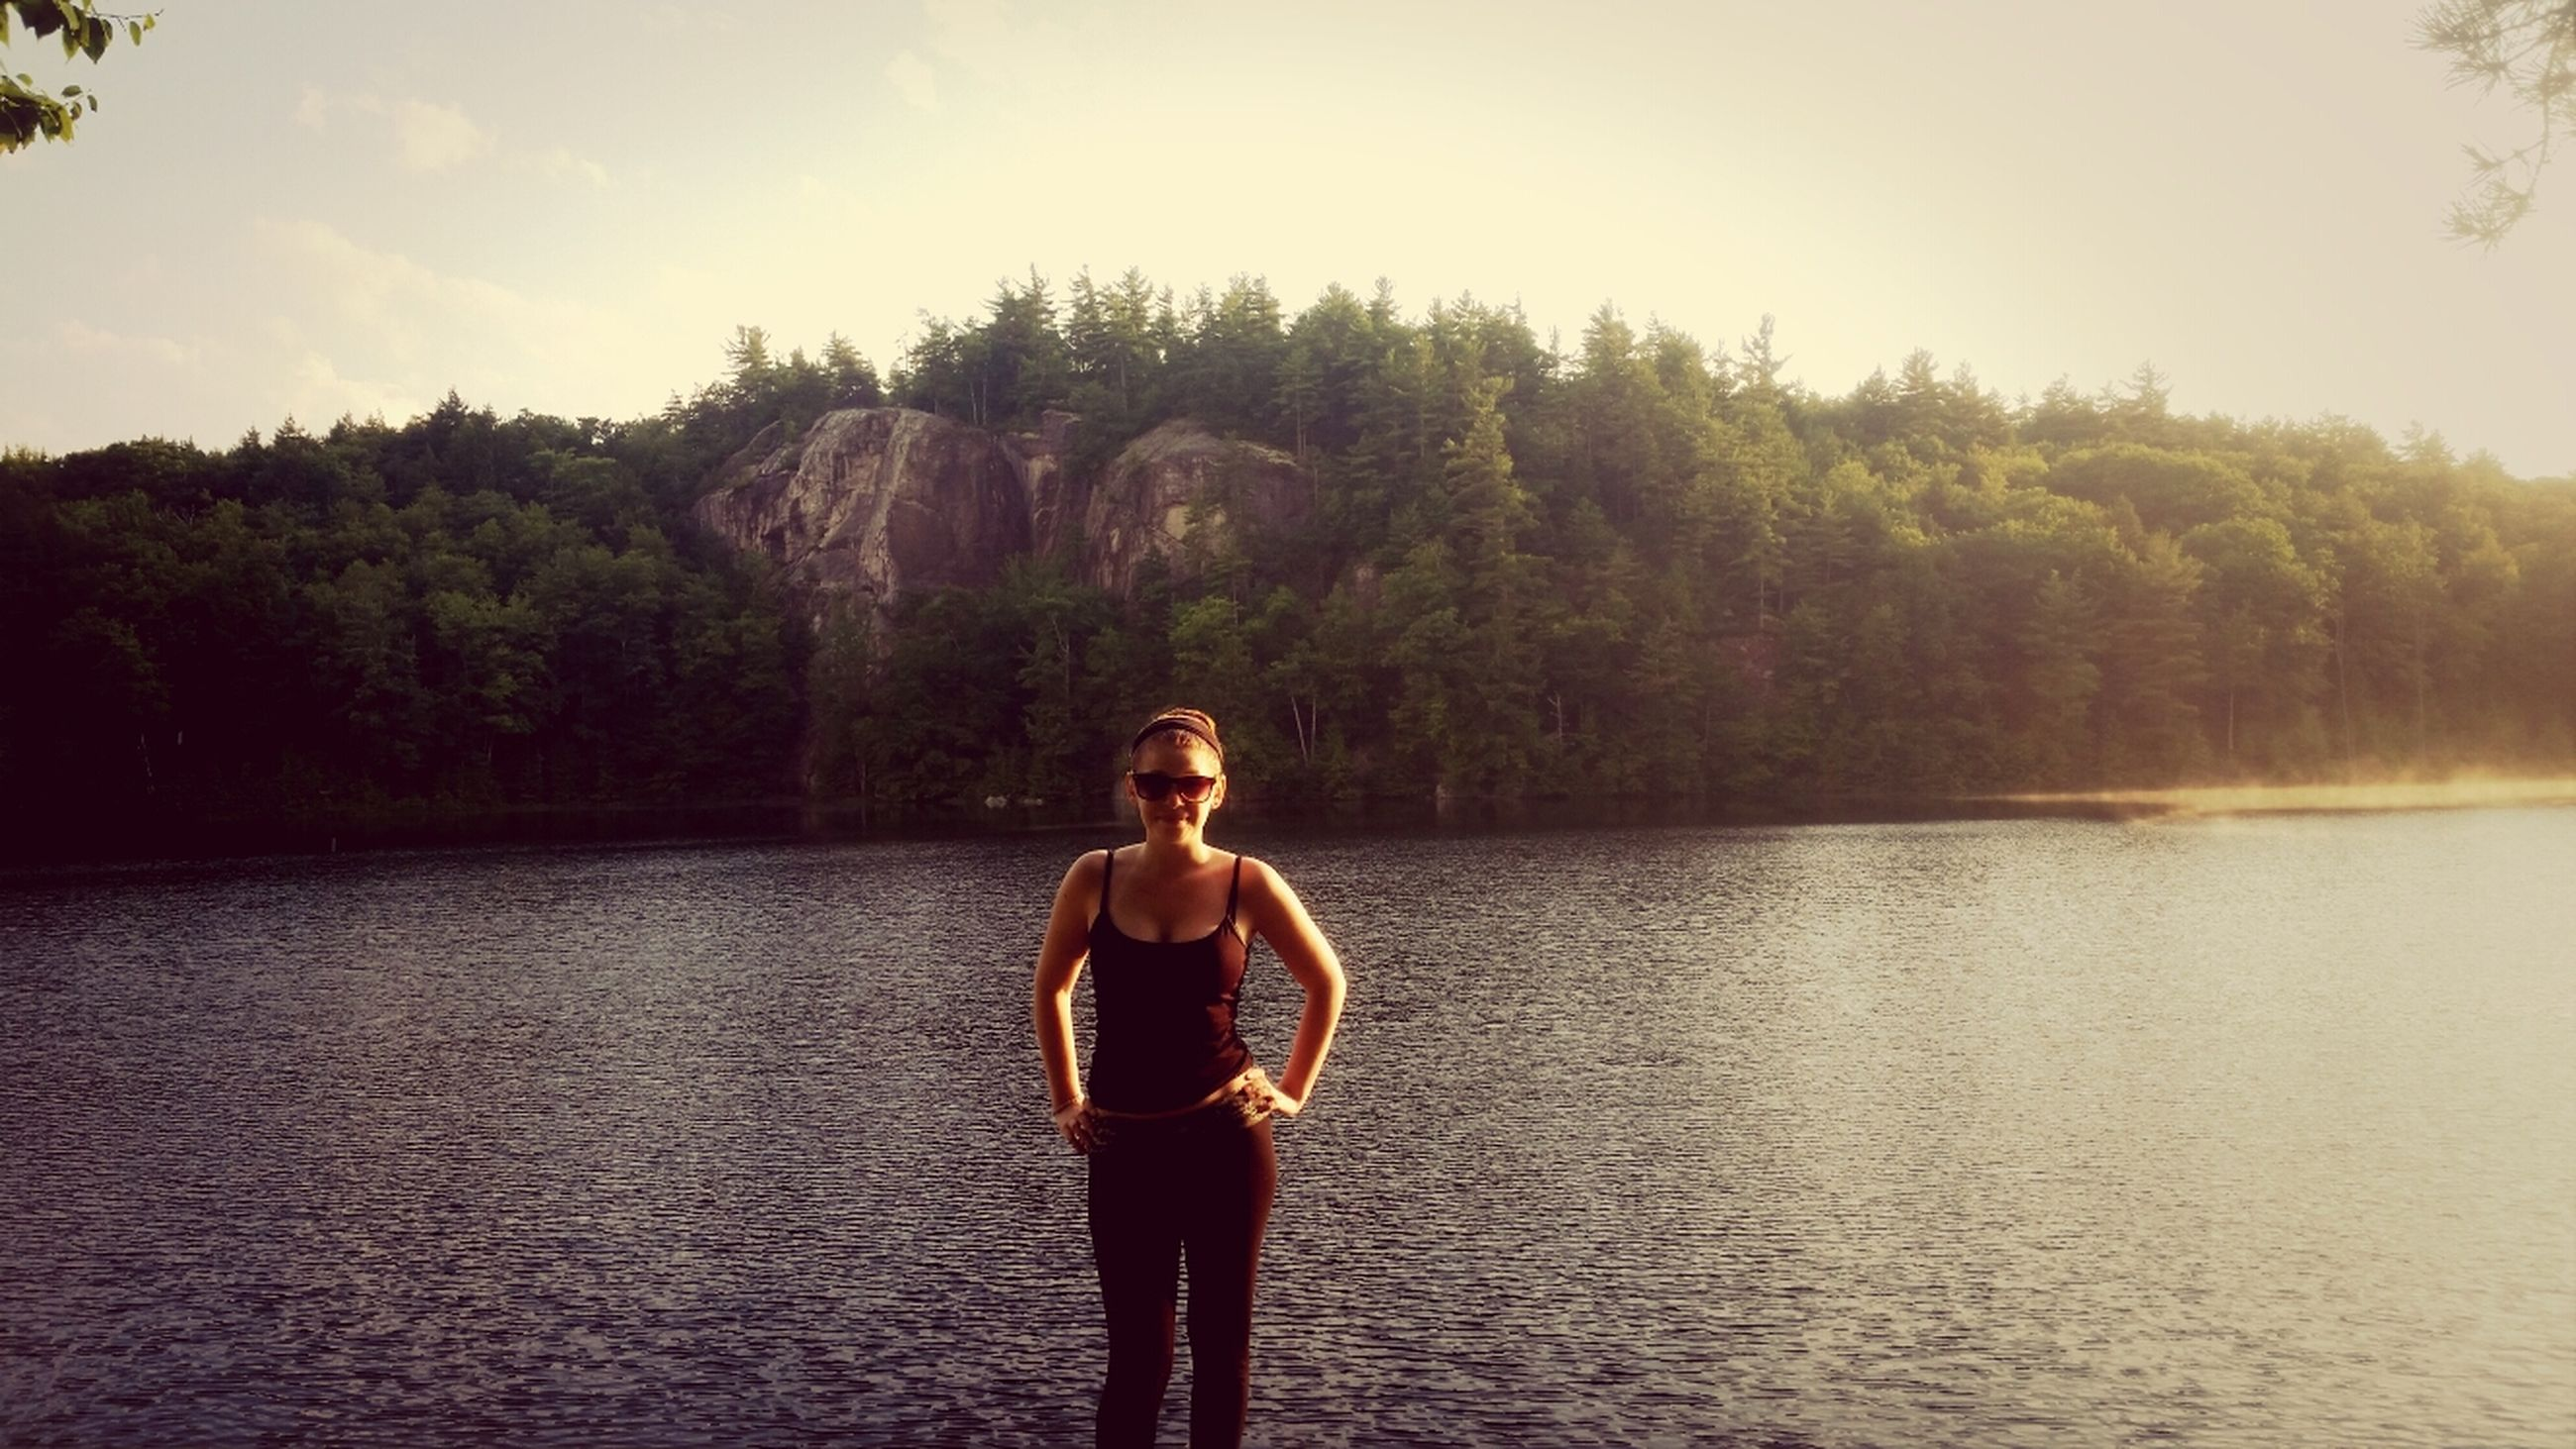 water, standing, lifestyles, tranquil scene, tranquility, tree, casual clothing, leisure activity, scenics, beauty in nature, young adult, nature, lake, full length, person, sky, mountain, three quarter length